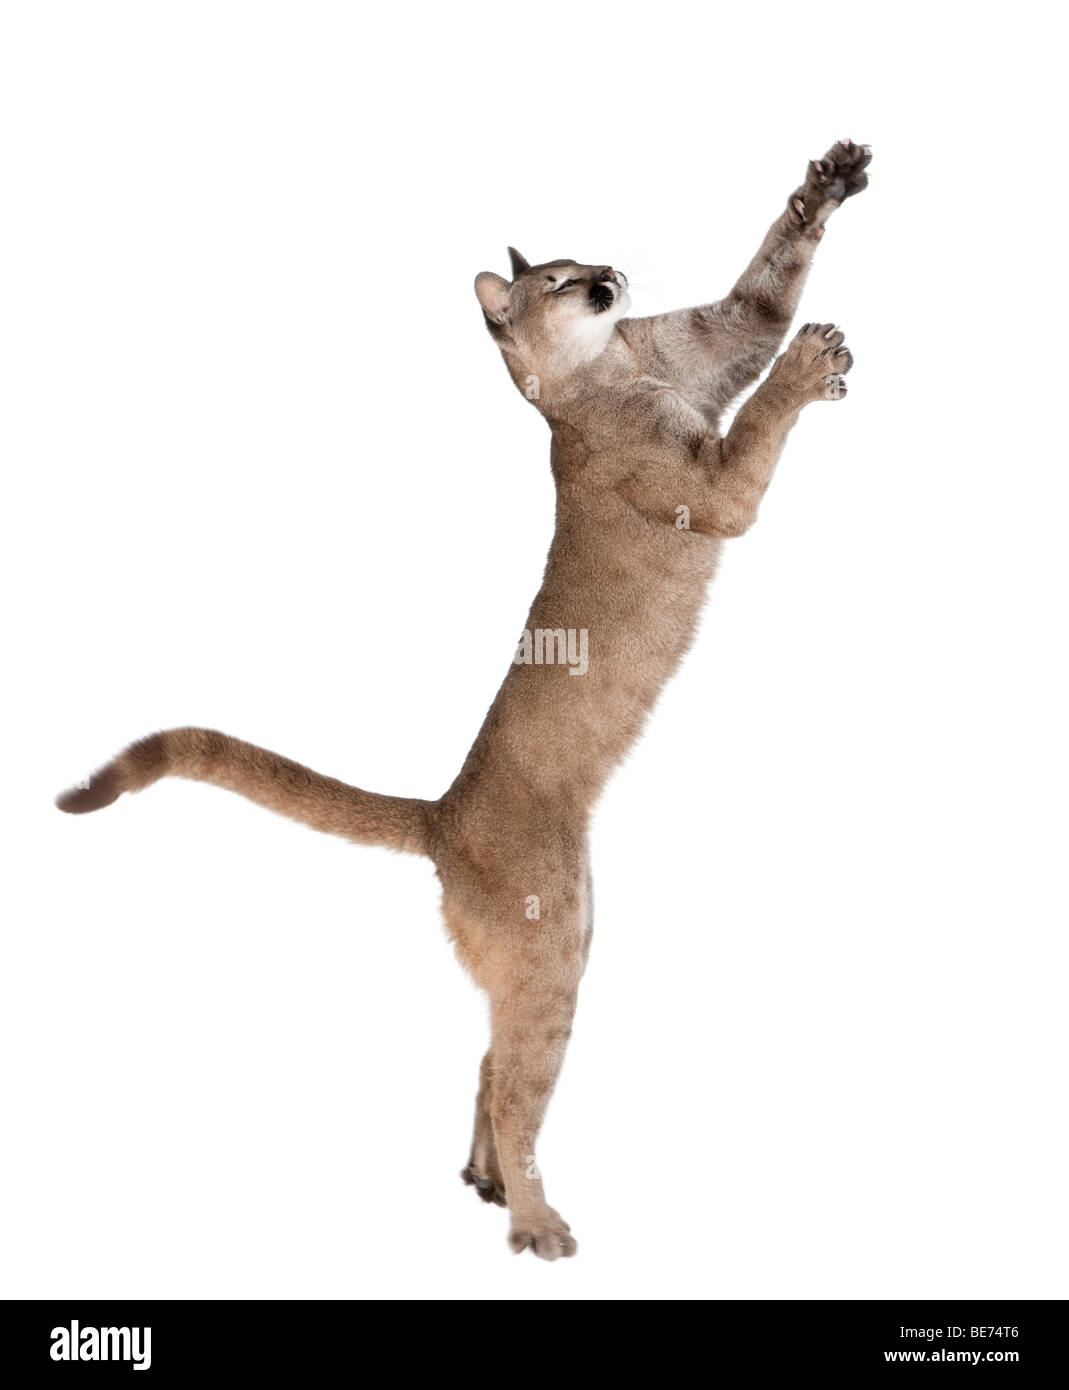 Puma cub, Puma concolor, 1 year old, leaping against white background, studio shot - Stock Image